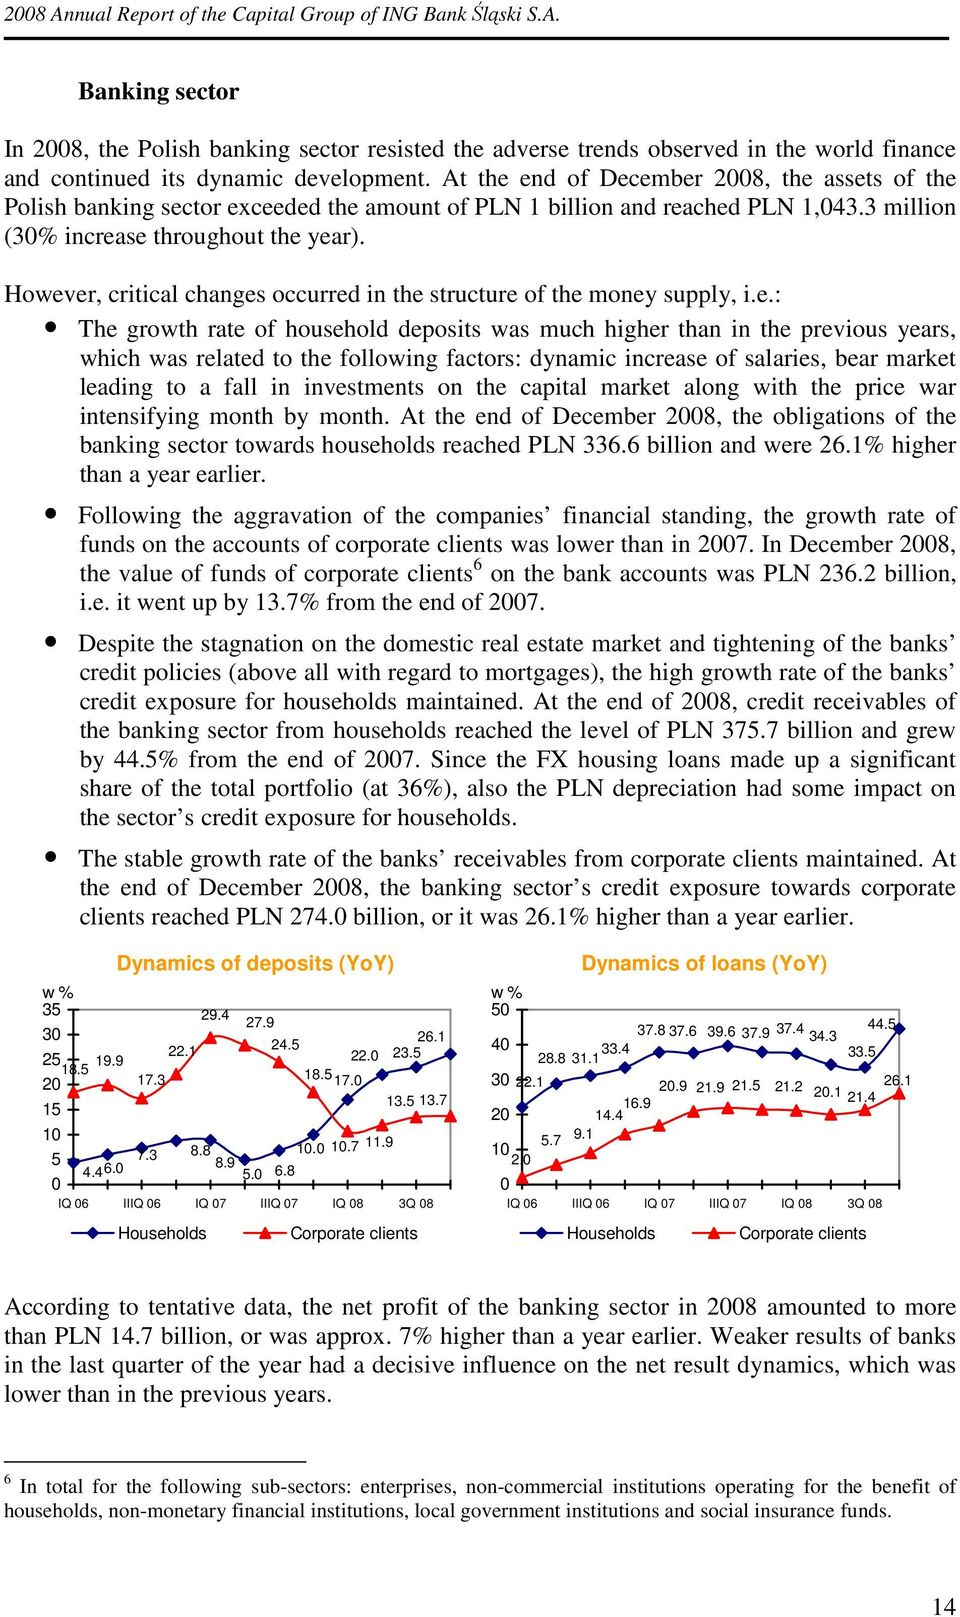 However, critical changes occurred in the structure of the money supply, i.e.: The growth rate of household deposits was much higher than in the previous years, which was related to the following